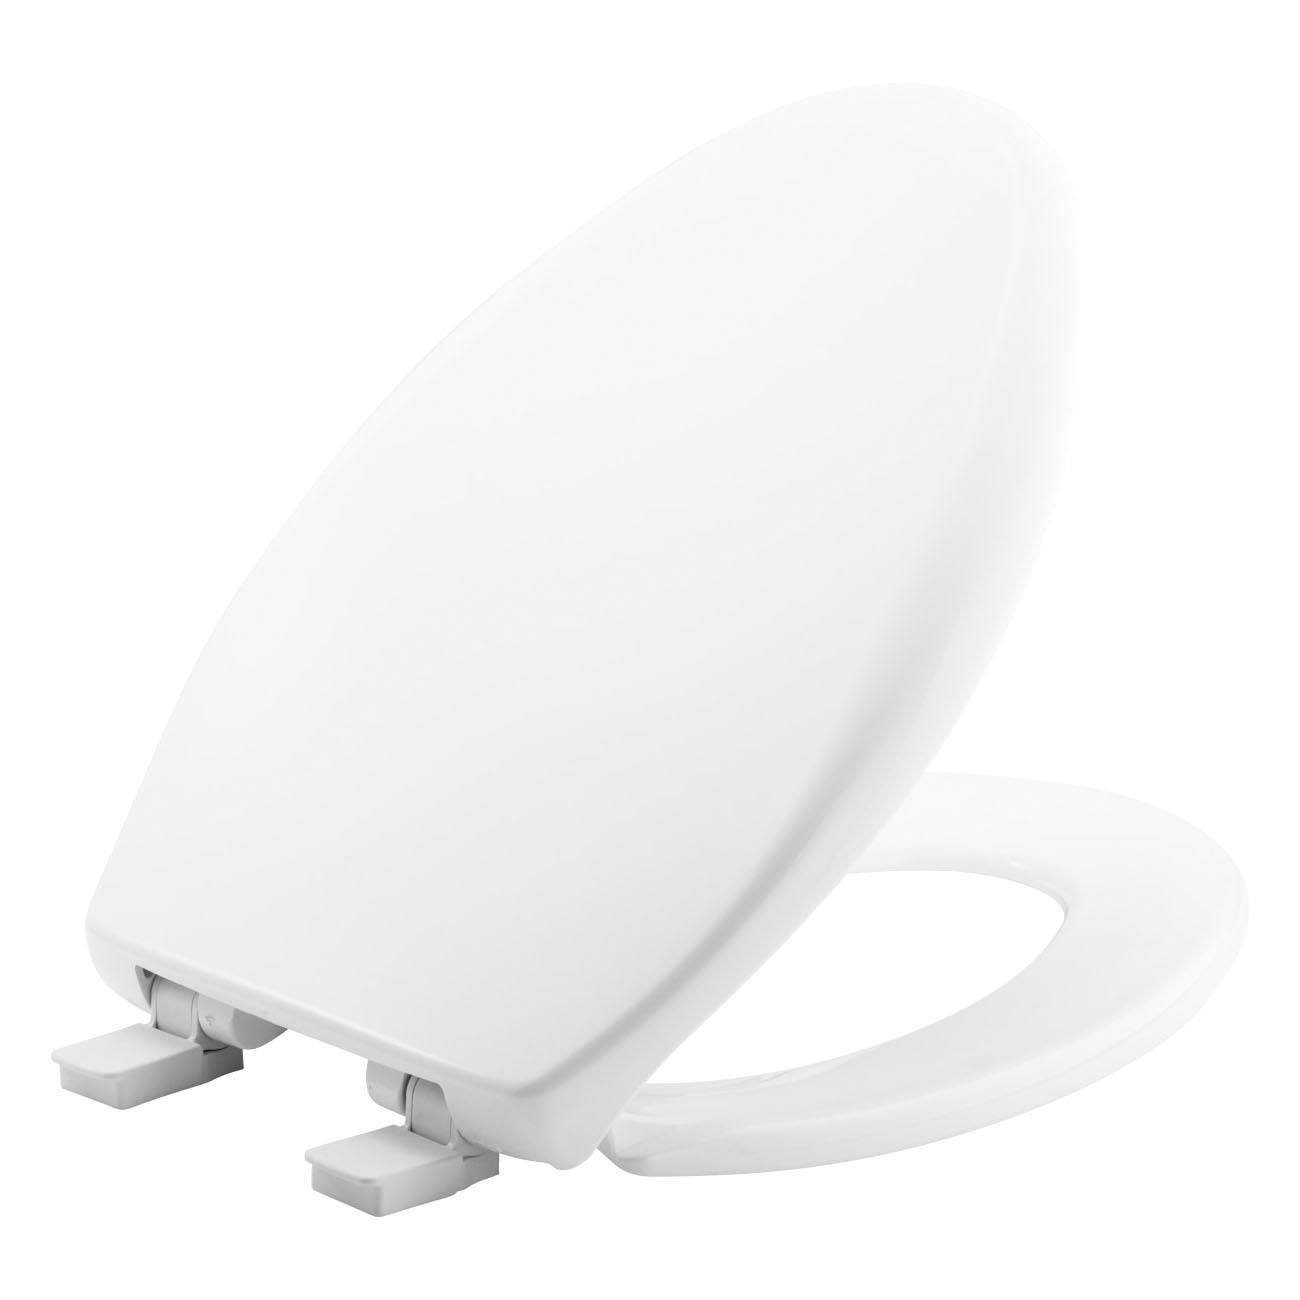 Church® 380E4 000 Toilet Seat With Cover, Elongated Bowl, Closed Front, Plastic, White, Adjustable Hinge, Domestic